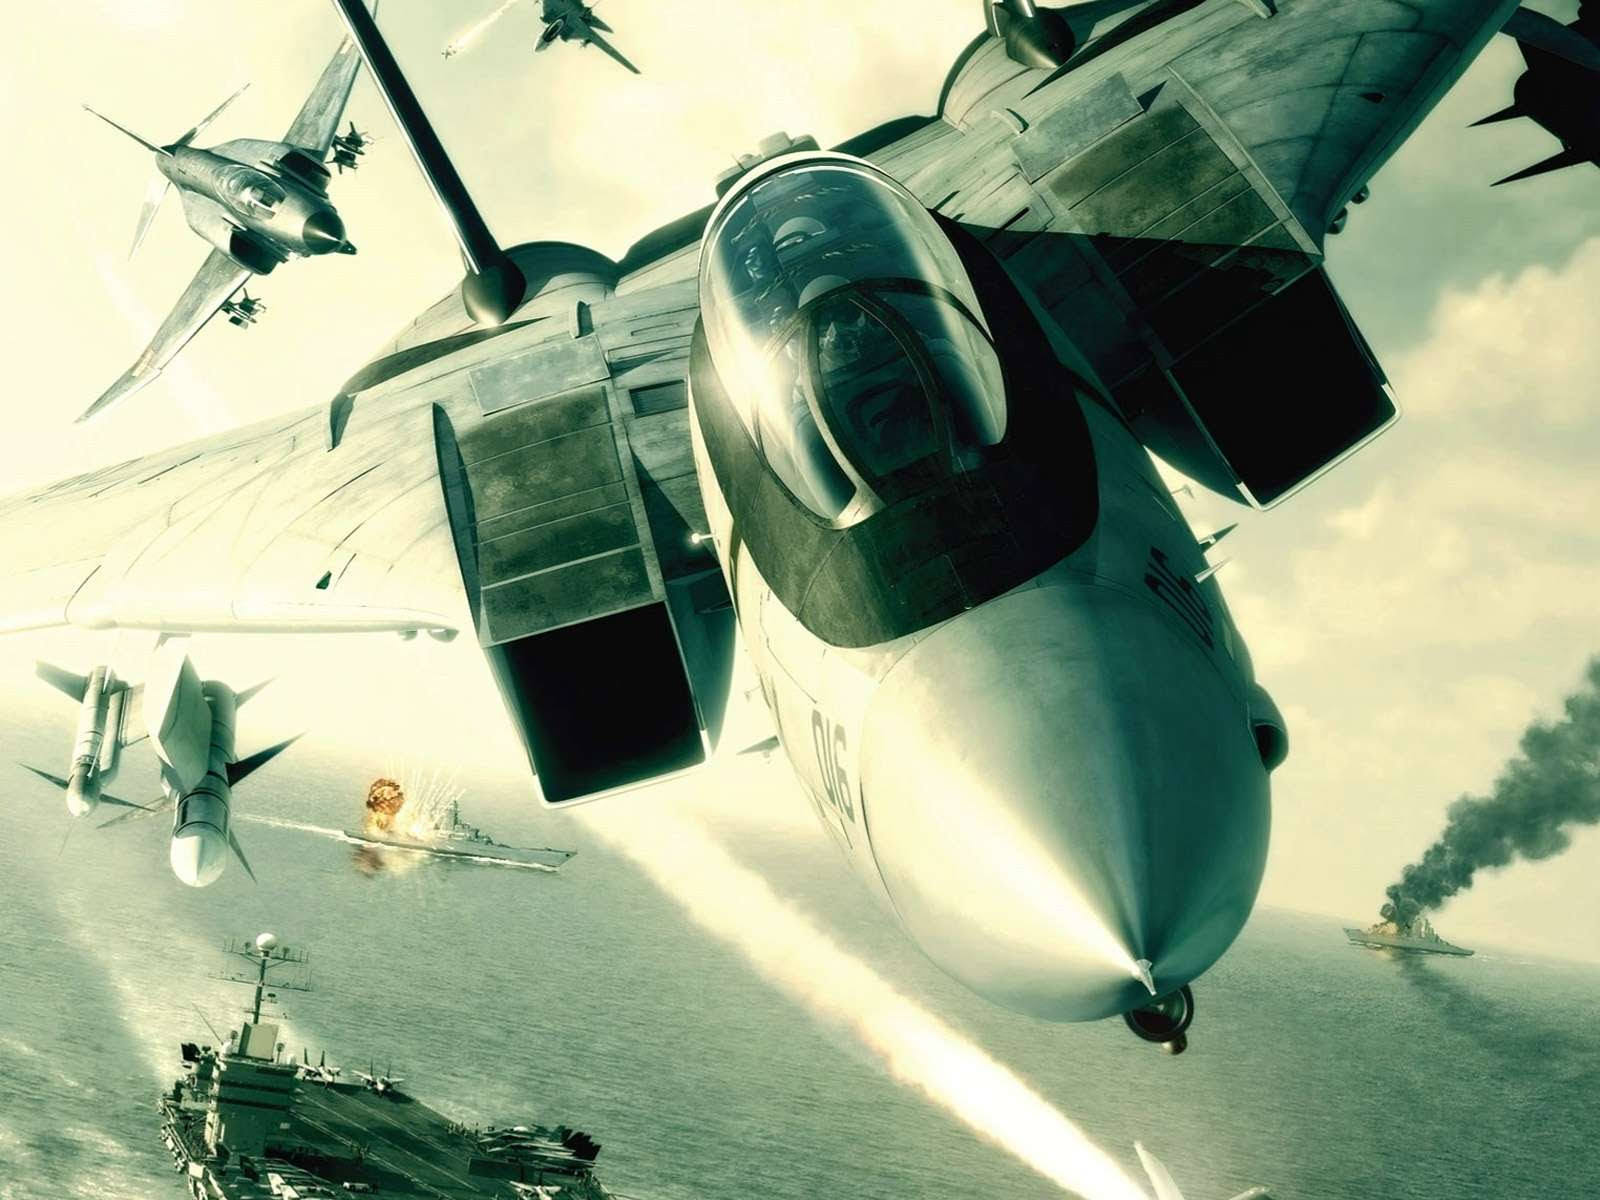 View Of F 14 Tomcat In Flight Ace Combat 5 Wallpaper Hd Wallpapers